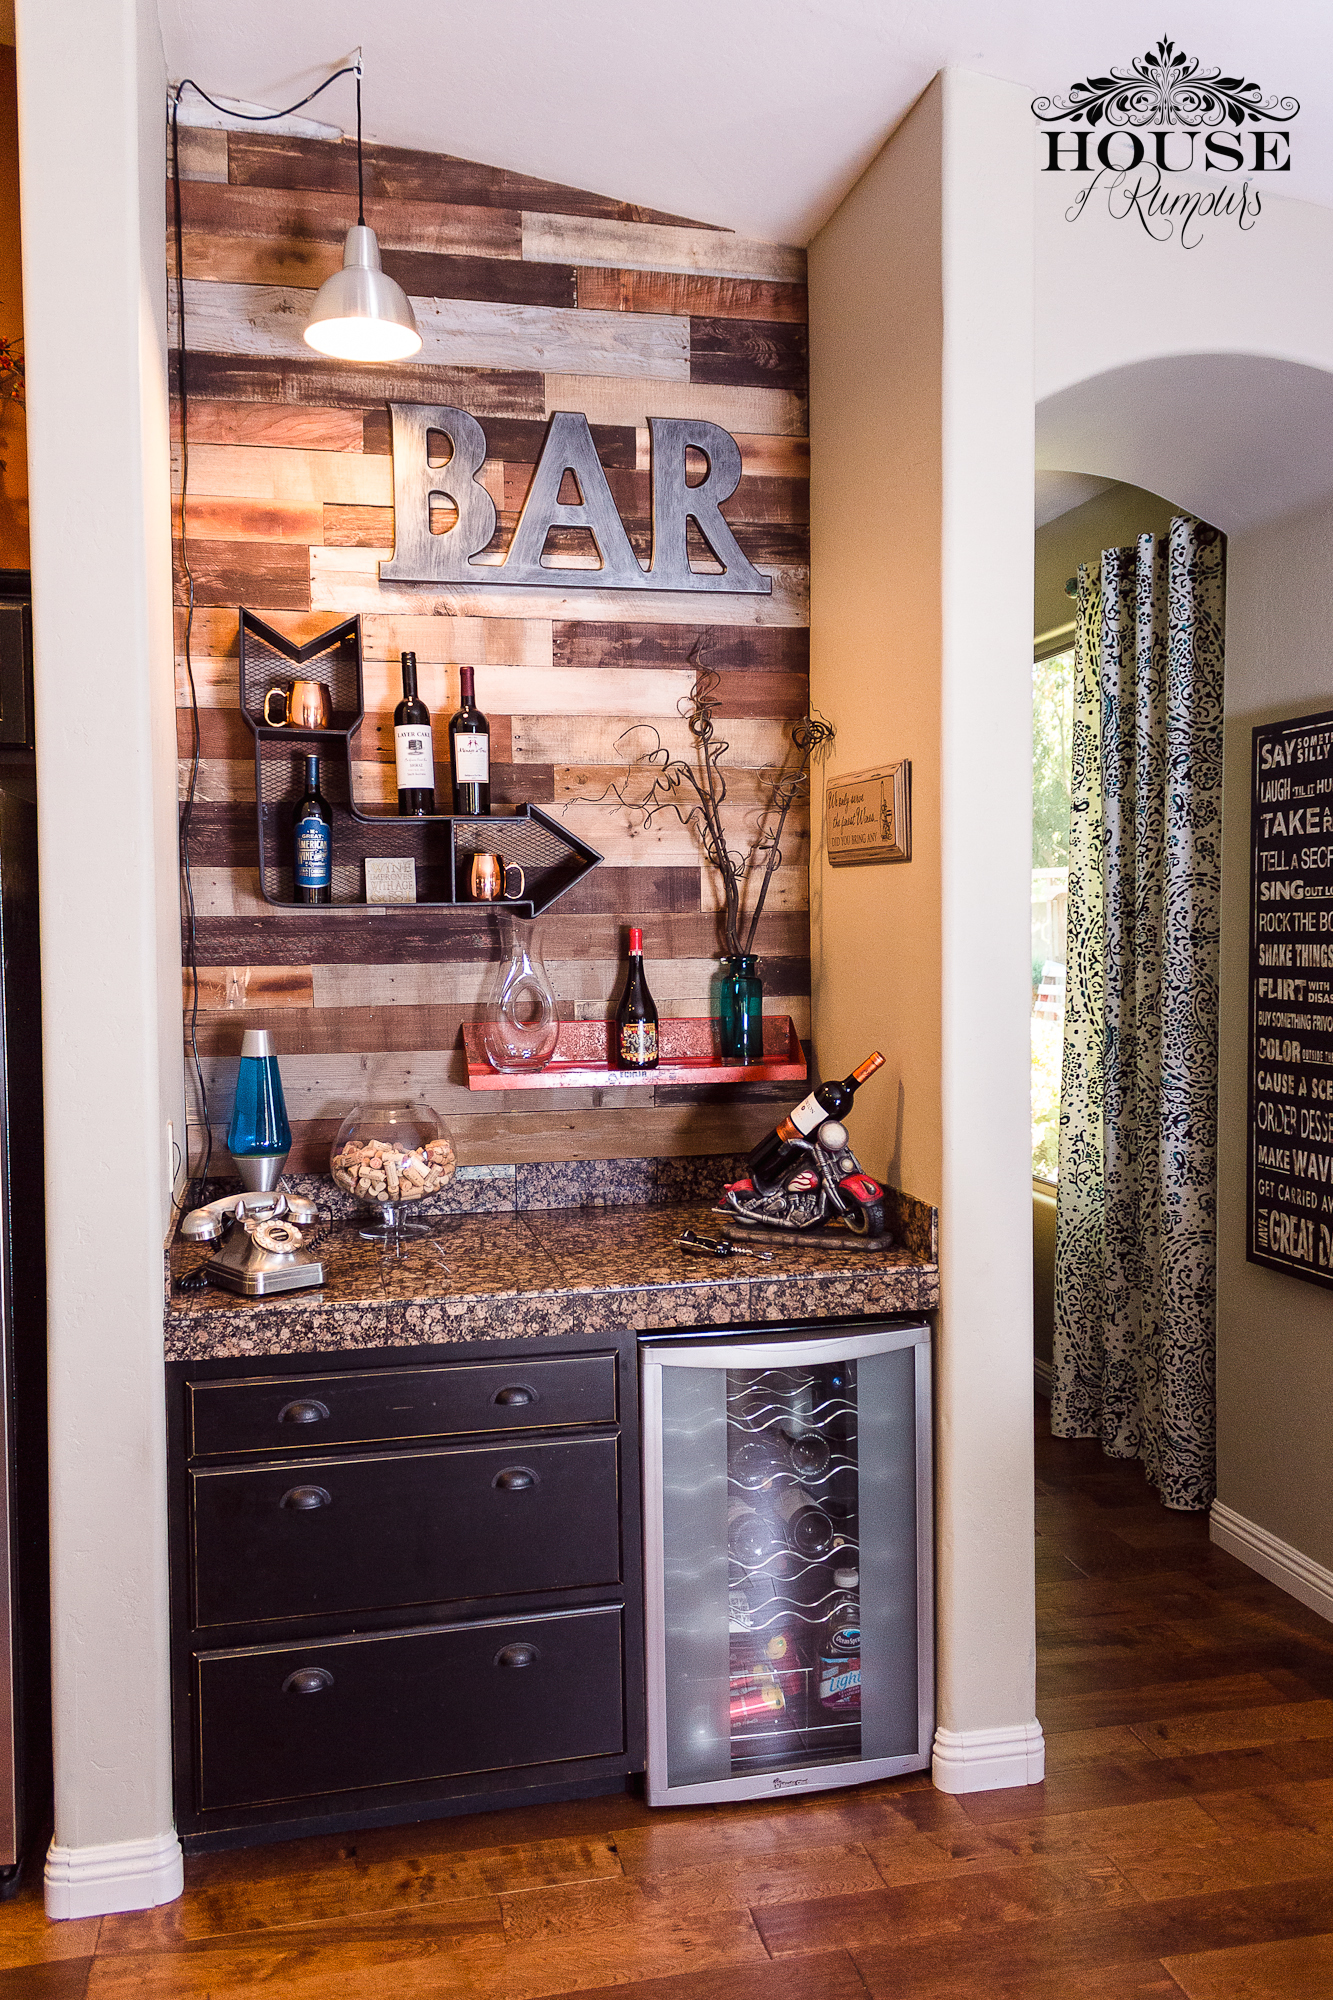 Wine bar pallet wall house of rumours - Bar en casa decoracion ...